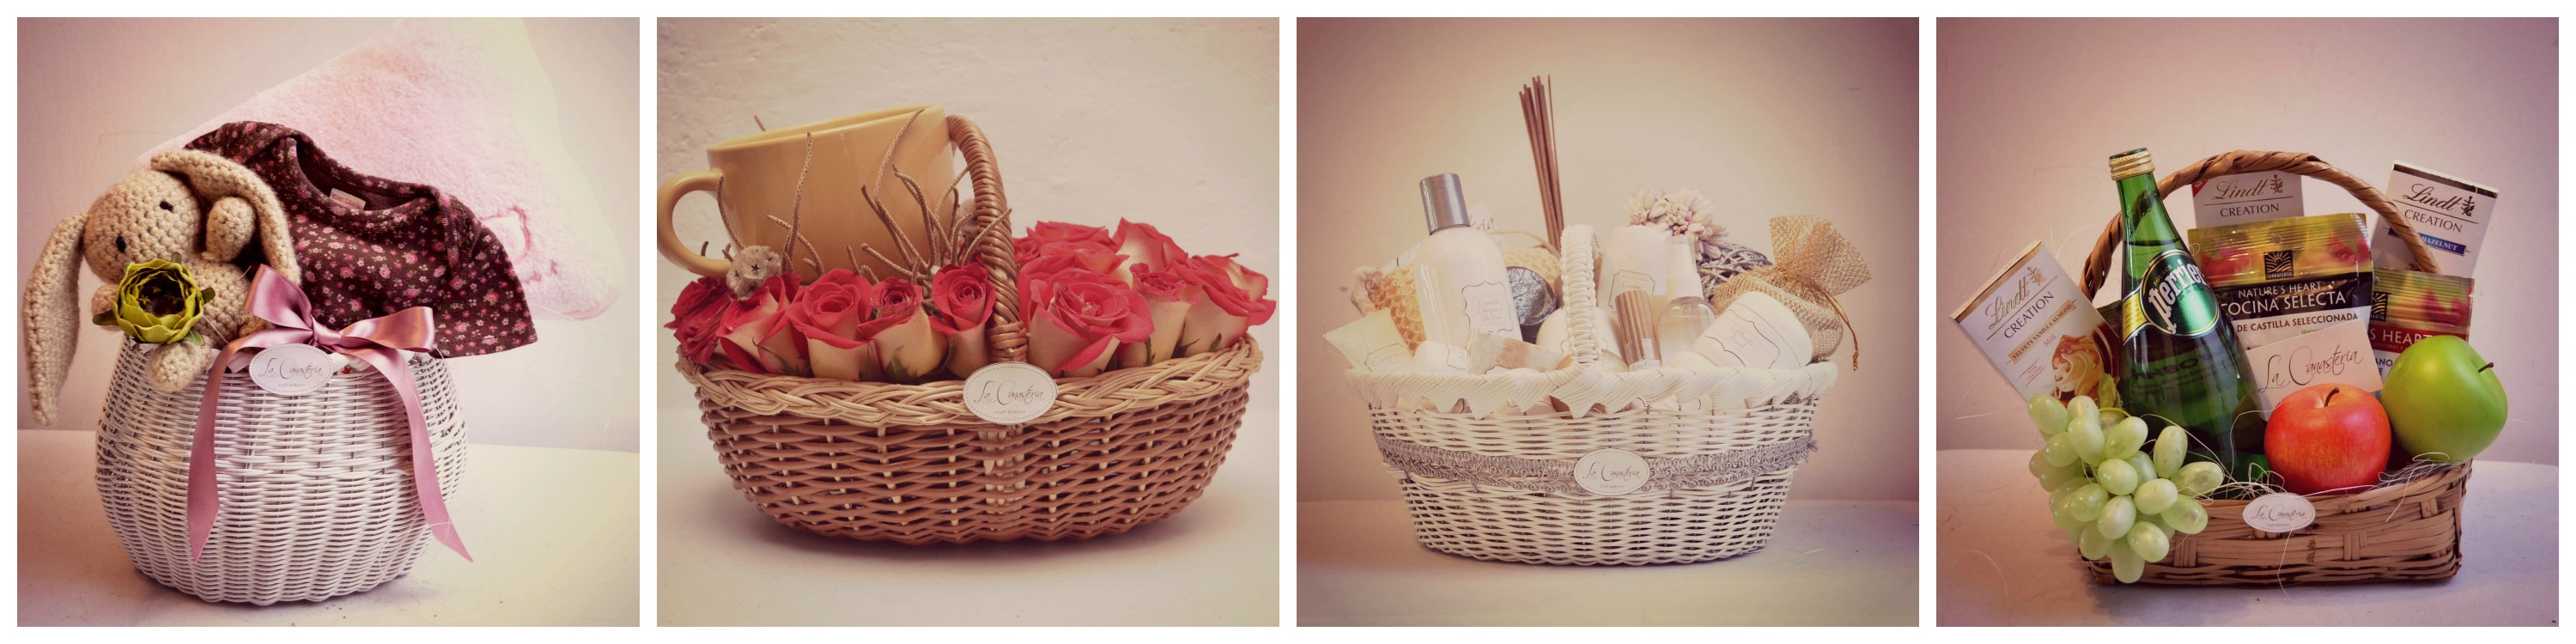 Baby Gift Baskets International Delivery : International delivery gift baskets to mexico la